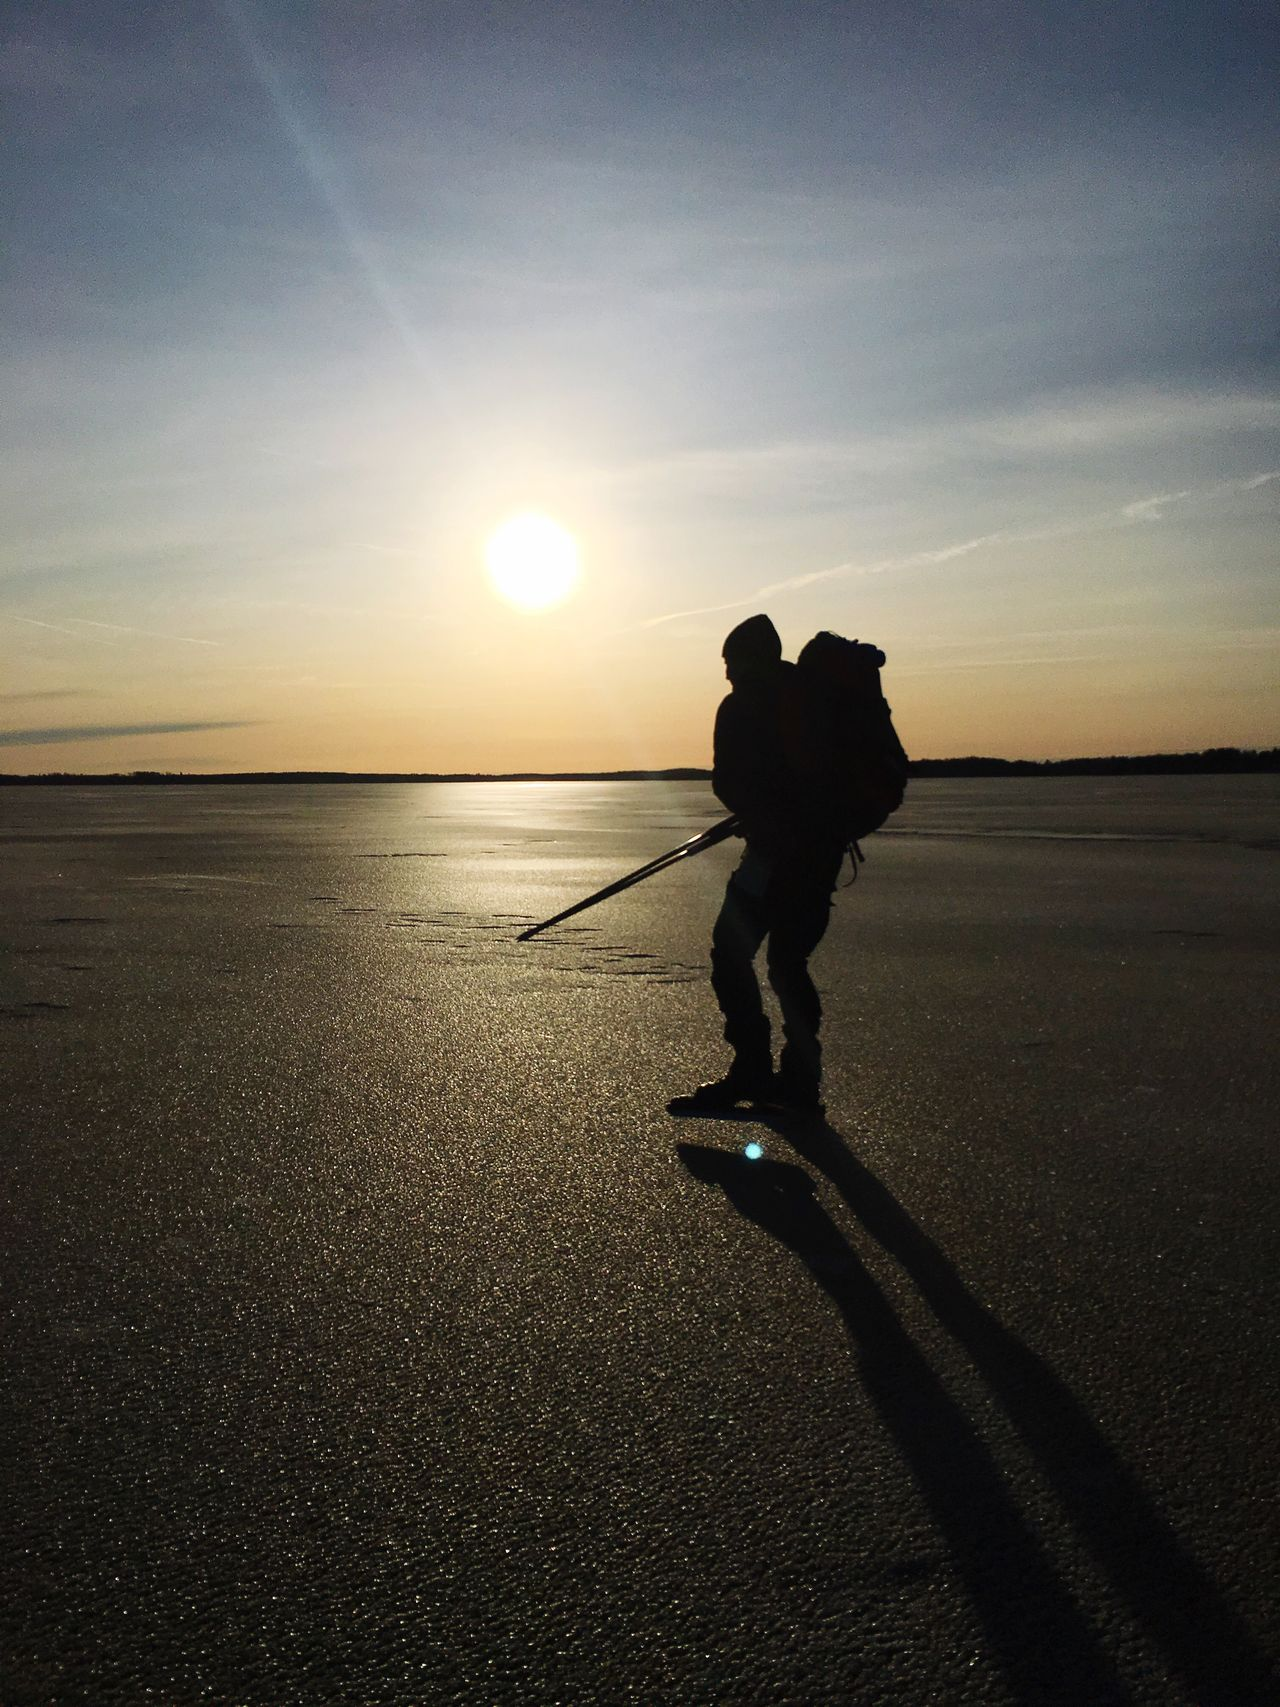 Long Distance Skating Frozen Nature Frozen Rucksack Packsack Winter Sun Sun Winter Activities Backpack Ice Pick Ice Rod Winter Pick Ice Outdoors Silhouette Shadow On Ice Sunset Touring Skates Nordic Skates Ice Skating Skates Rod Snow Sports